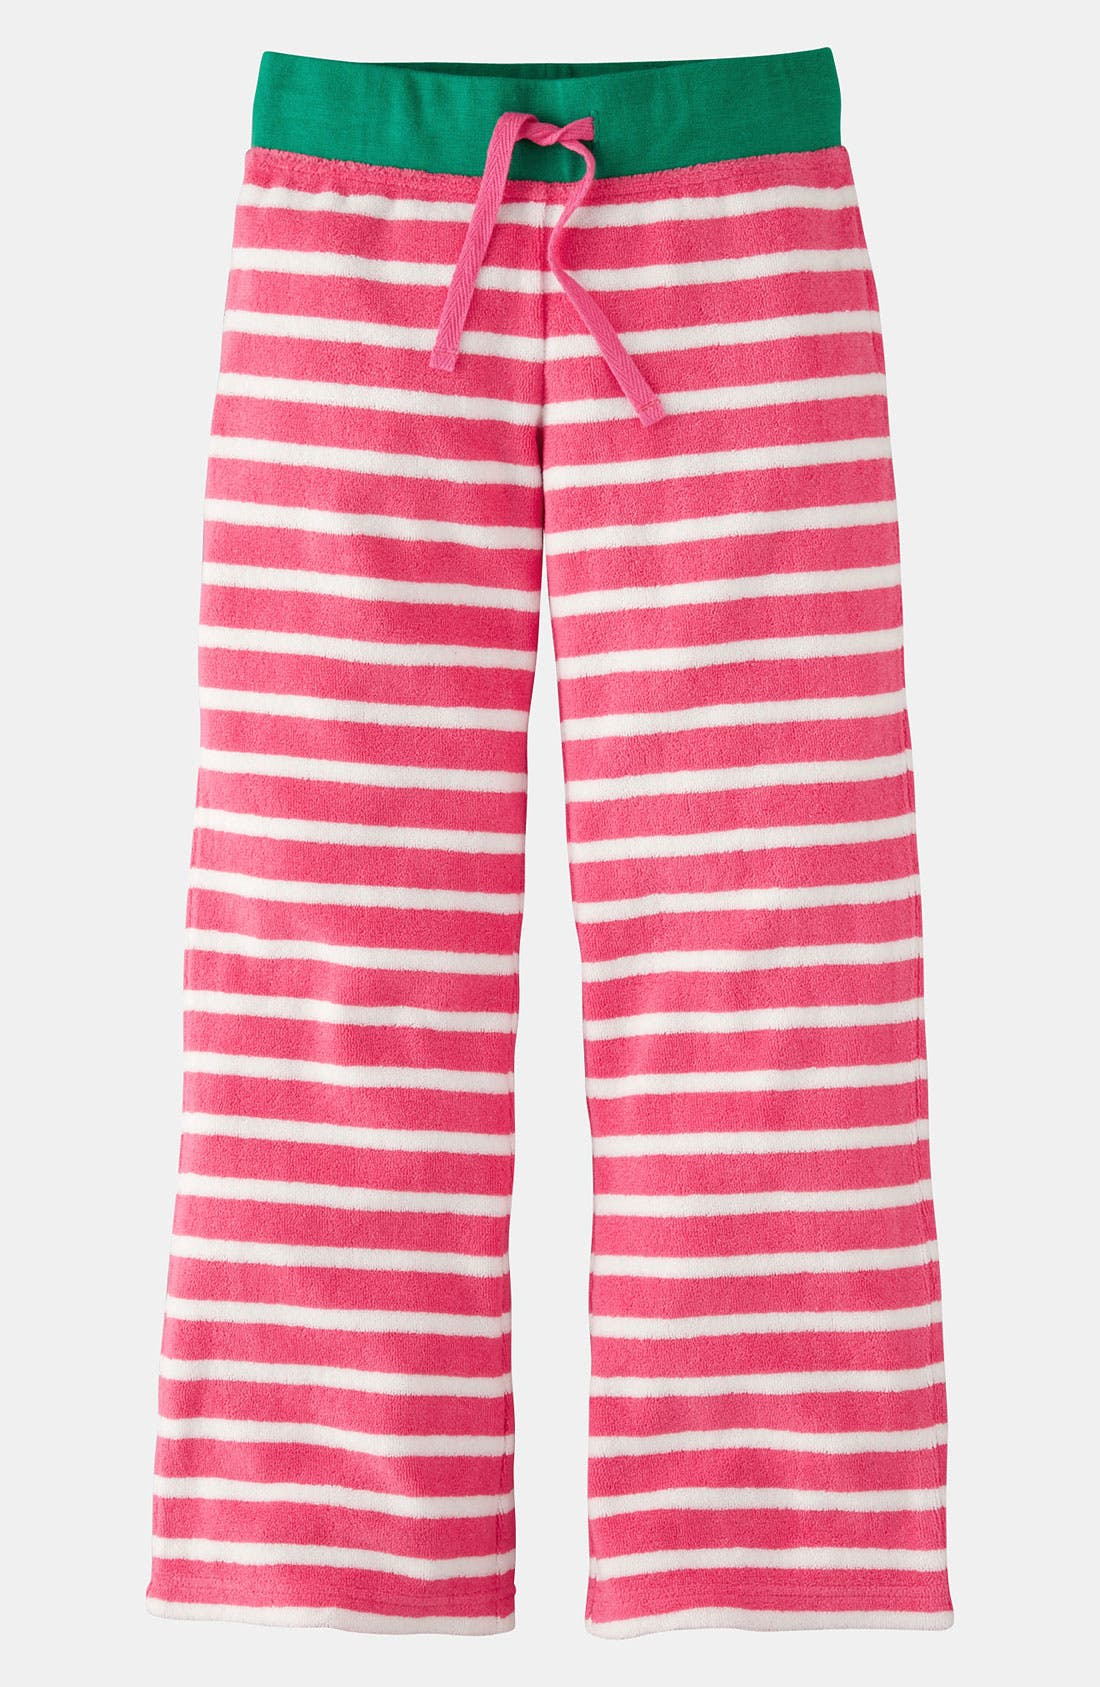 Main Image - Mini Boden 'Toweling' Pants (Little Girls & Big Girls)